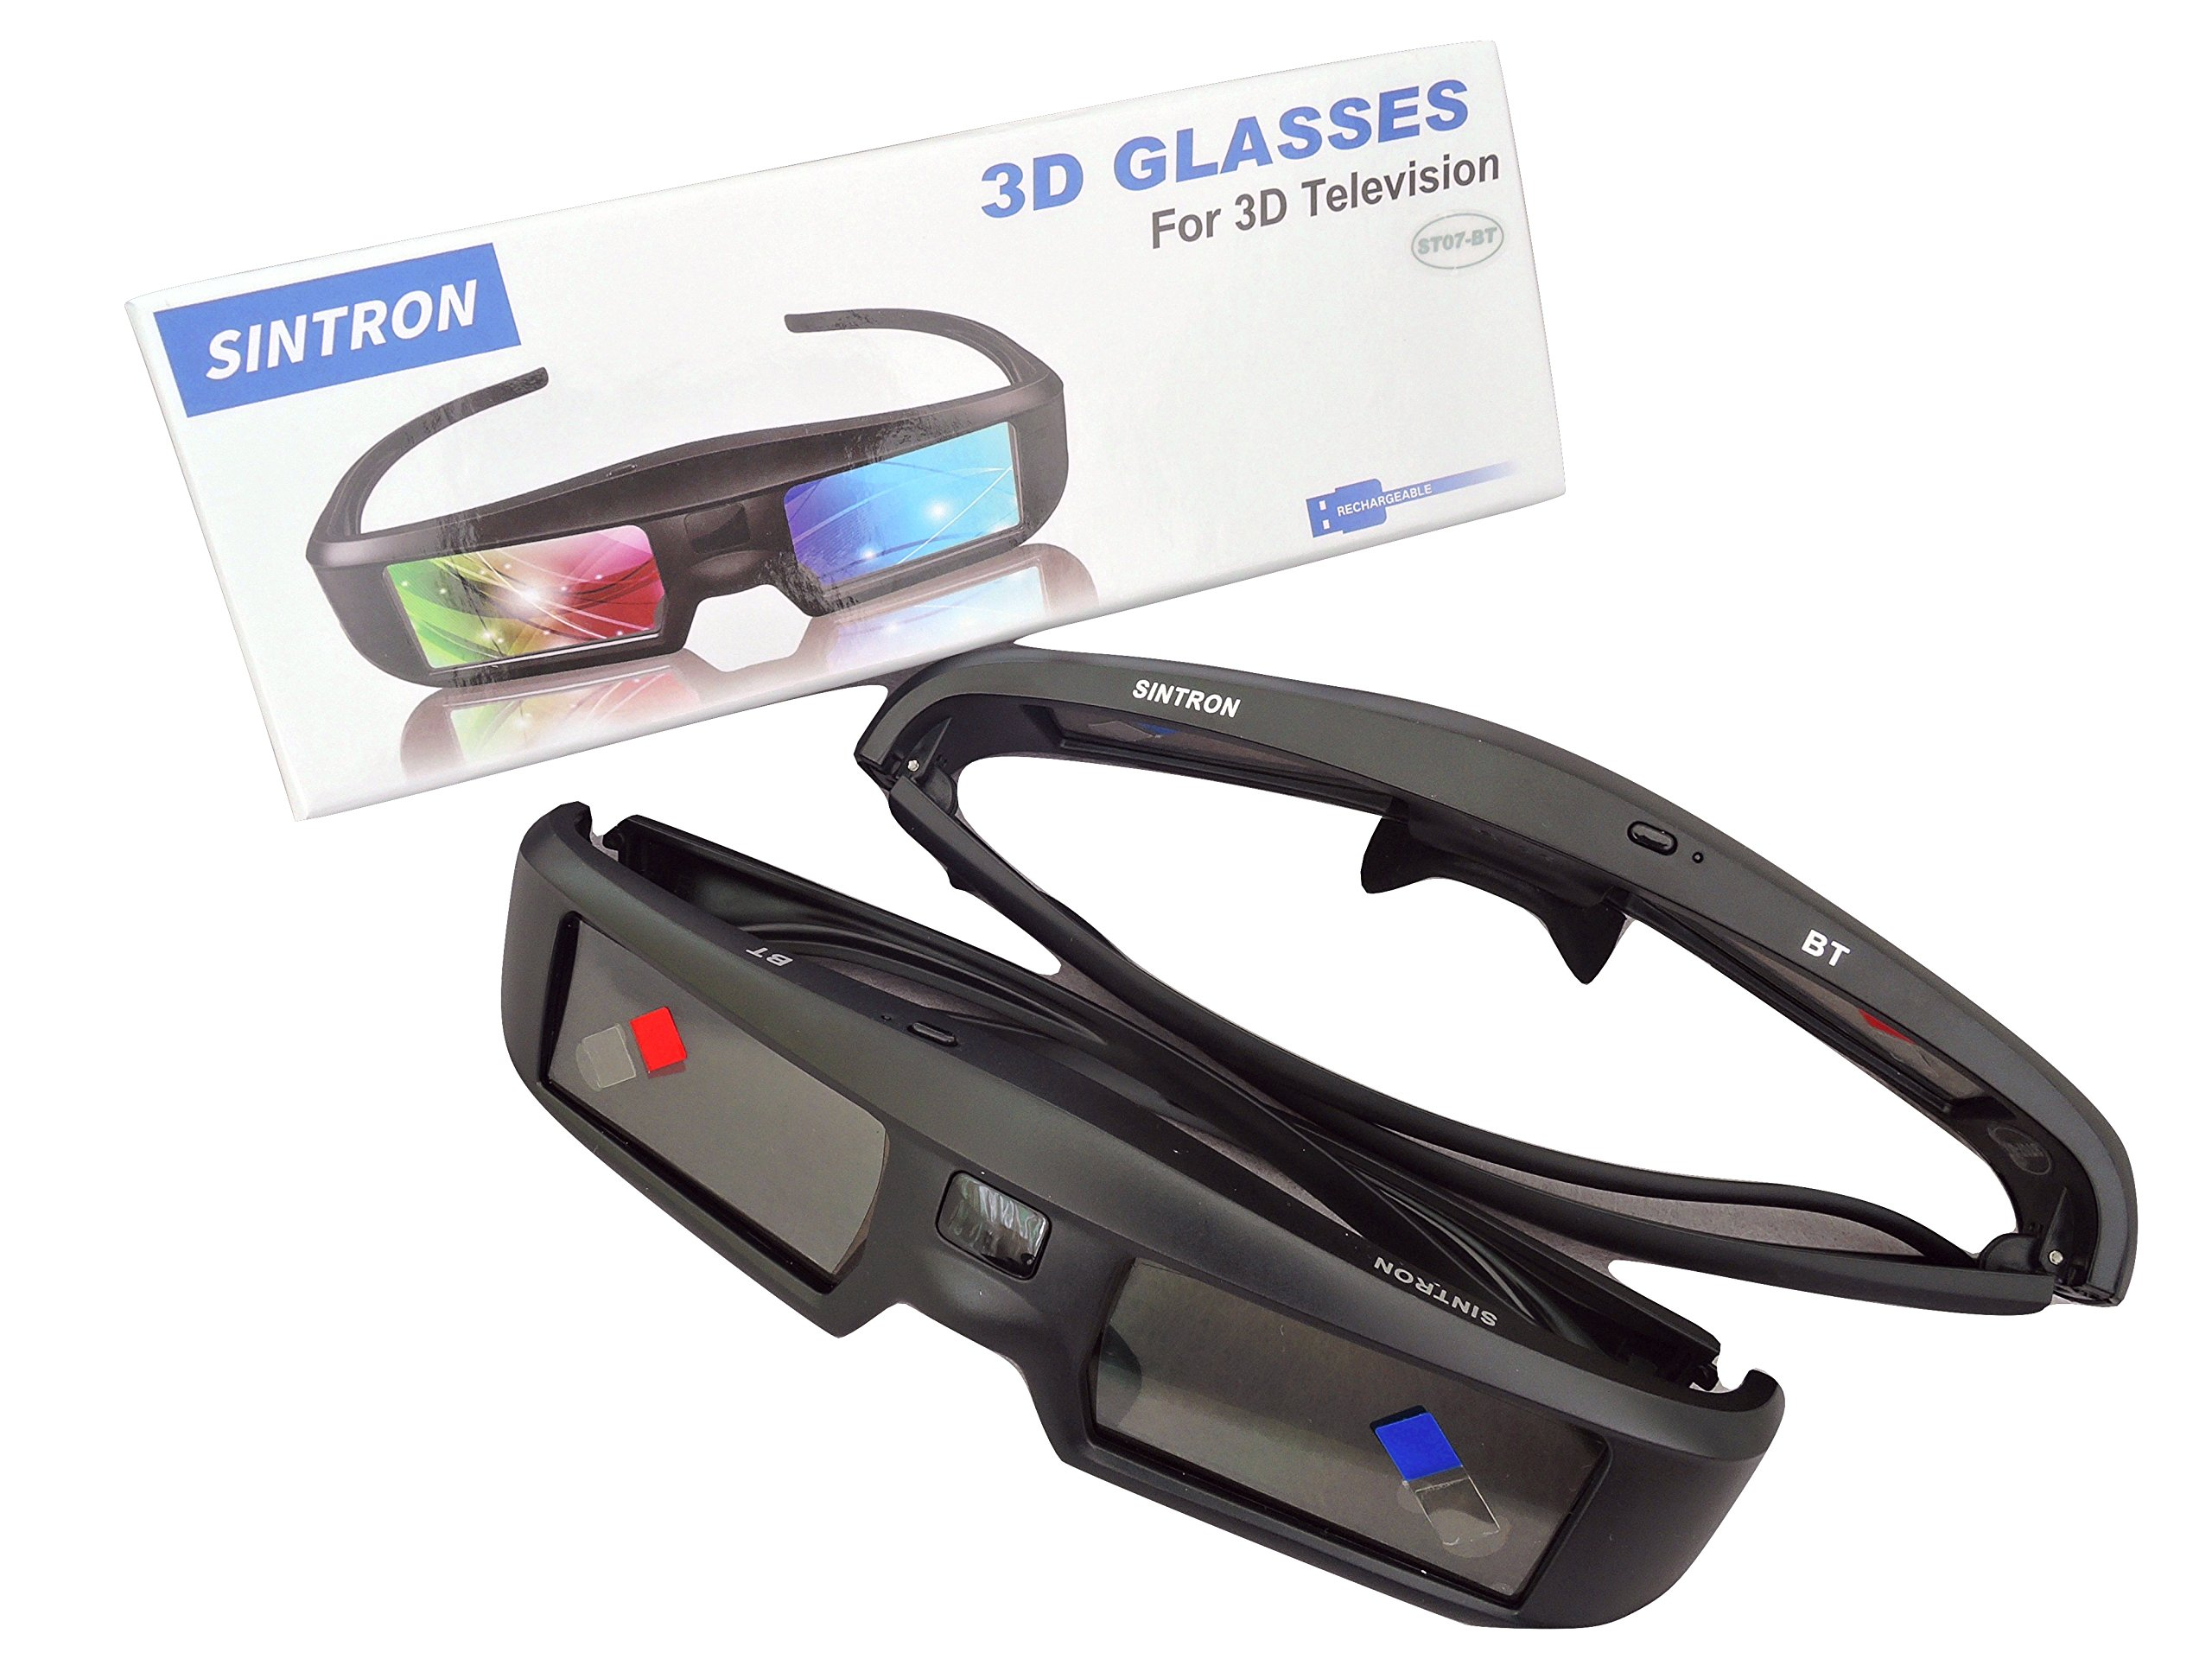 2X 3D Active Shutter Glasses Rechargeable - Sintron ST07-BT for RF 3D TV, 3D Glasses for Sony, Panasonic, Samsung 3D TV, Epson 3D projector, Compatible with TDG-BT500A TDG-BT400A TY-ER3D5MA TY-ER3D4MA by Sintron (Image #9)